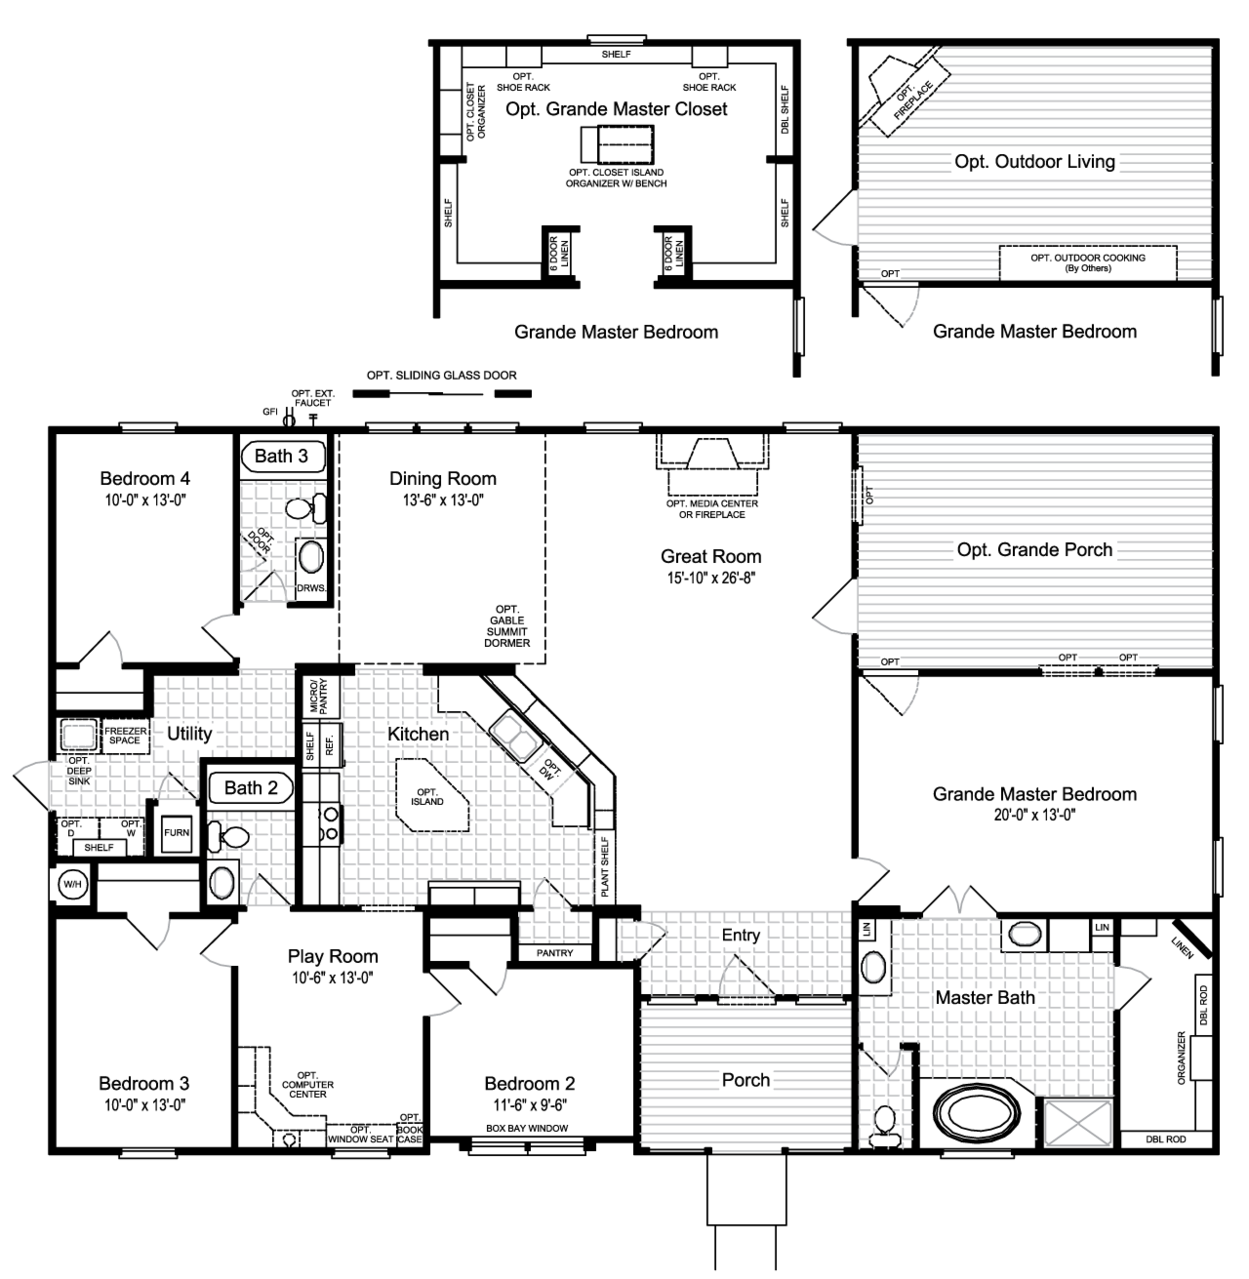 View the hacienda ii floor plan for a 2580 sq ft palm Floor plans with pictures